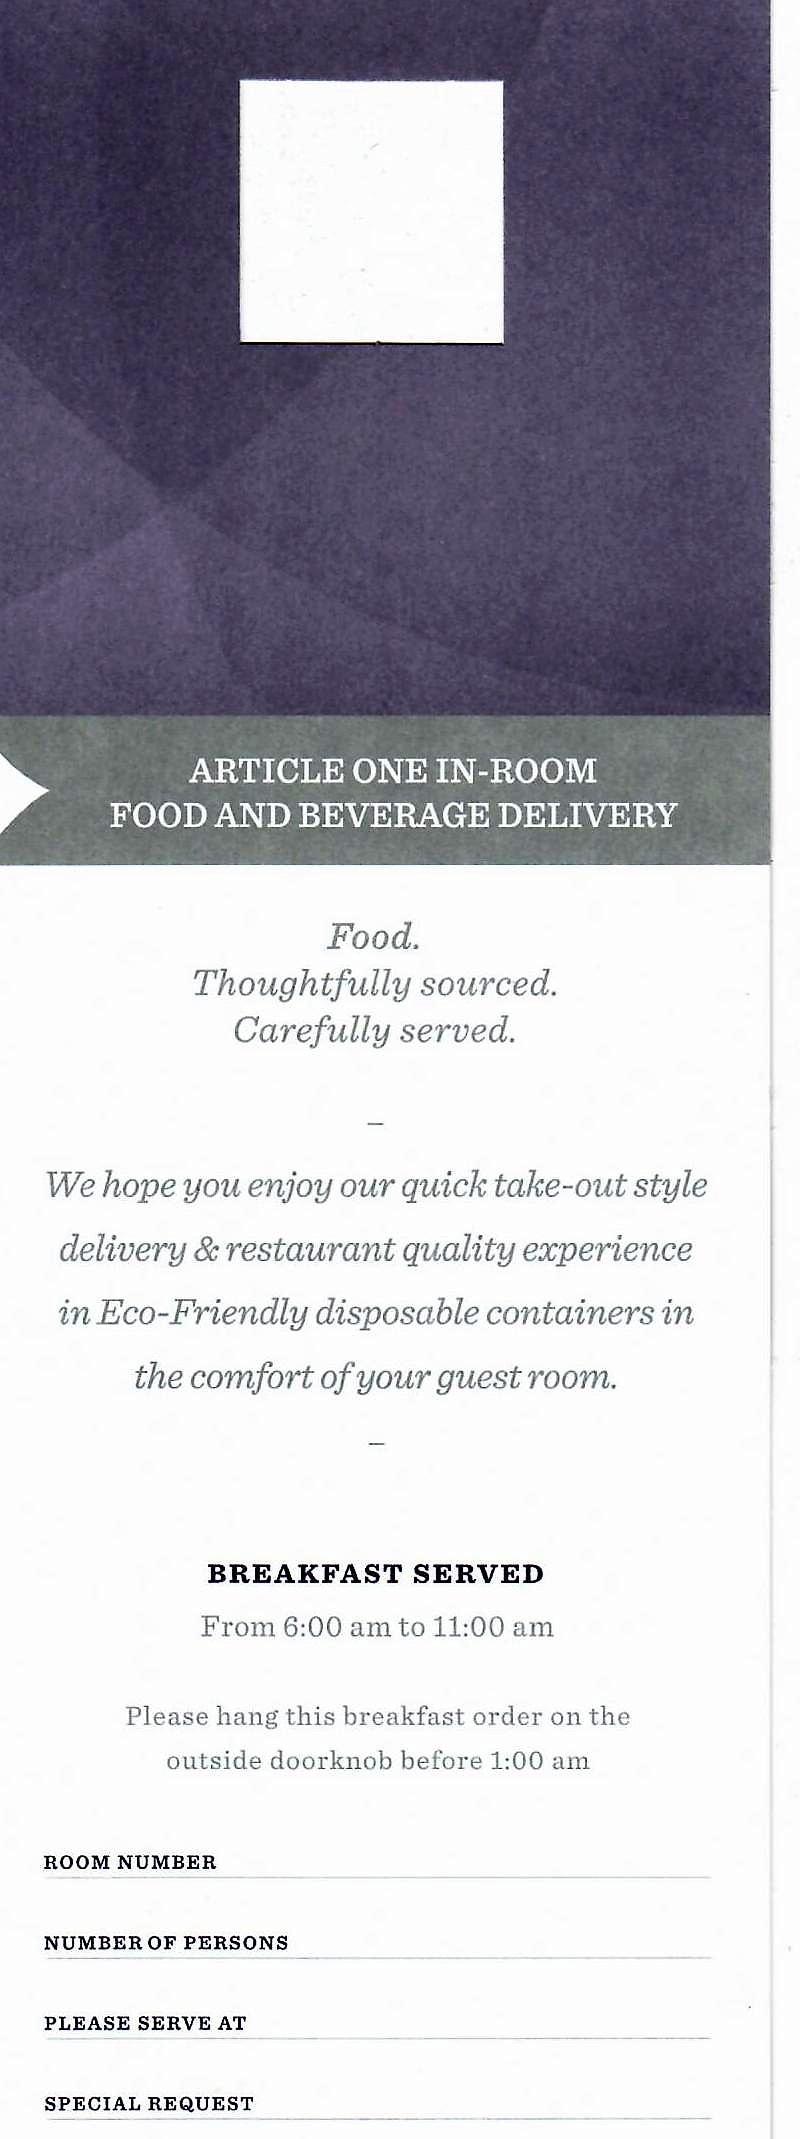 Hyatt Regency Washington Room Service Menu